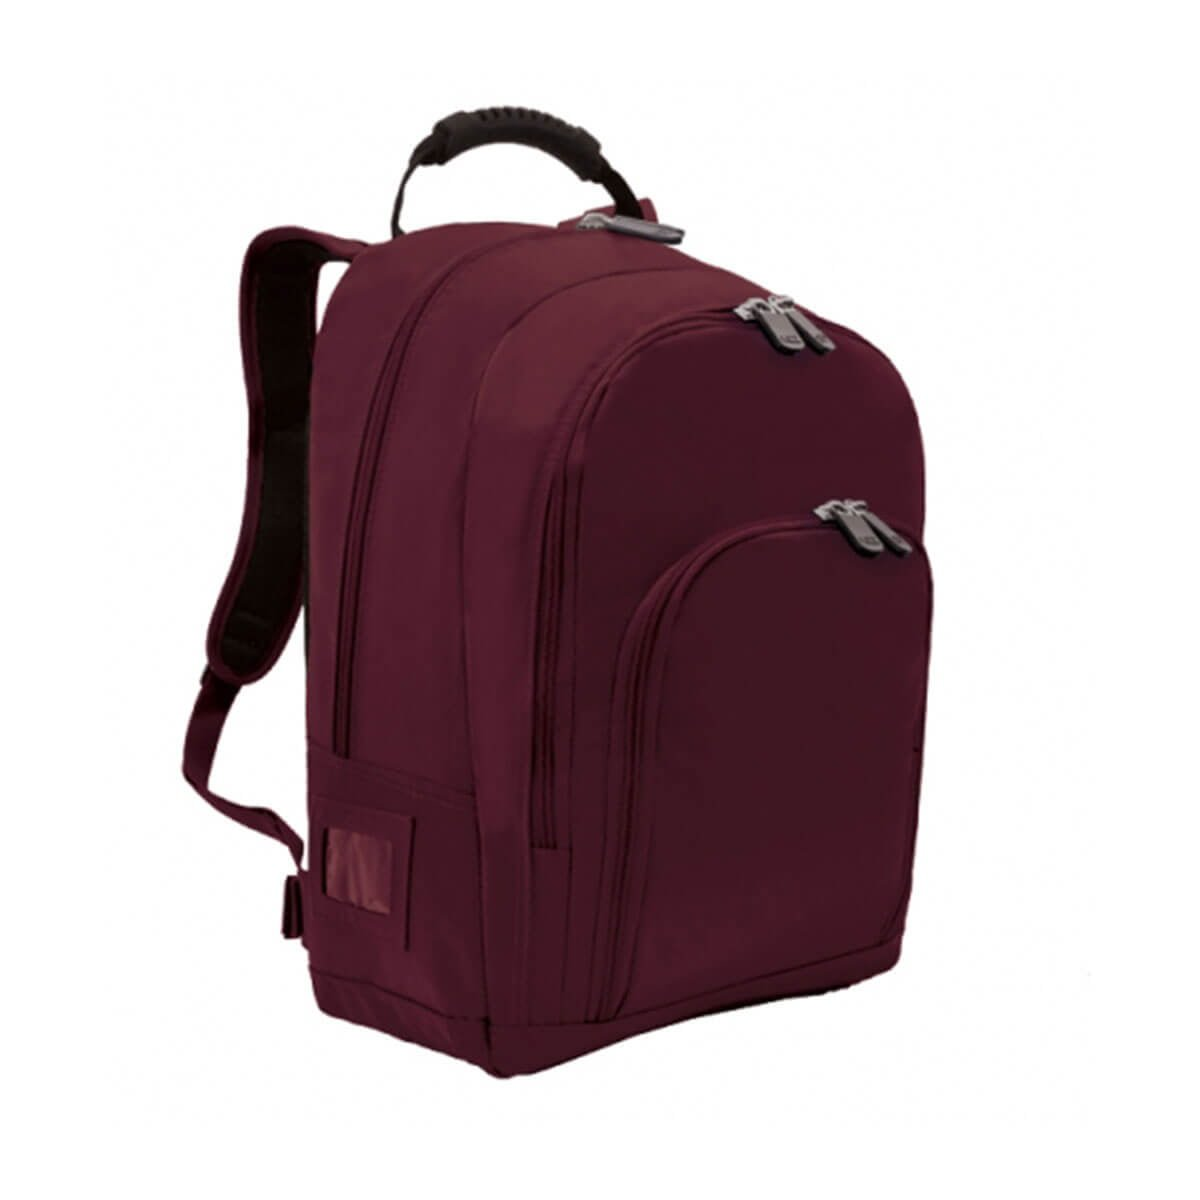 Castell Backpack-Maroon